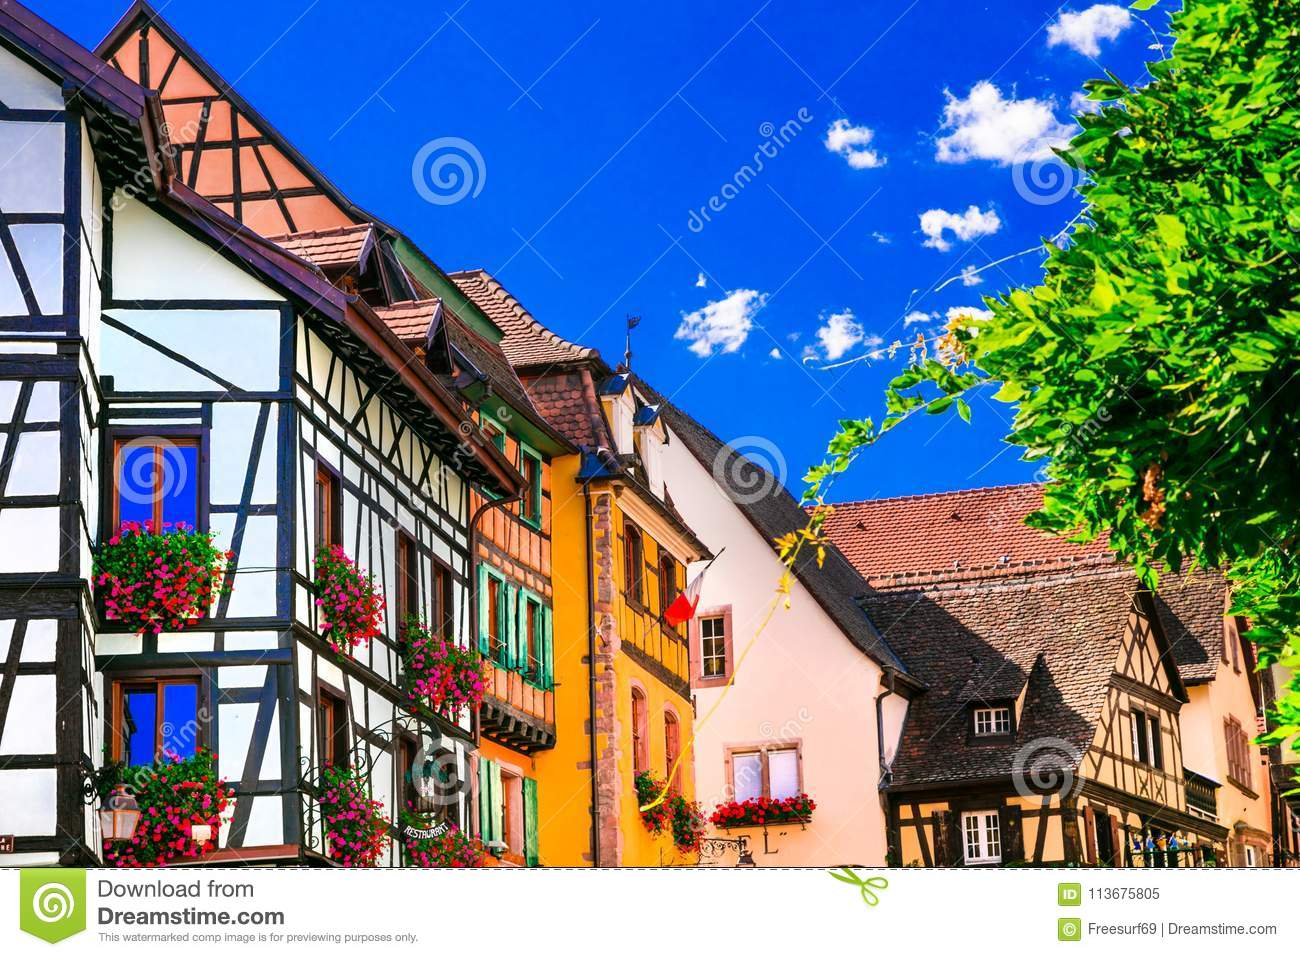 Colorful traditional villages of Alsace in France